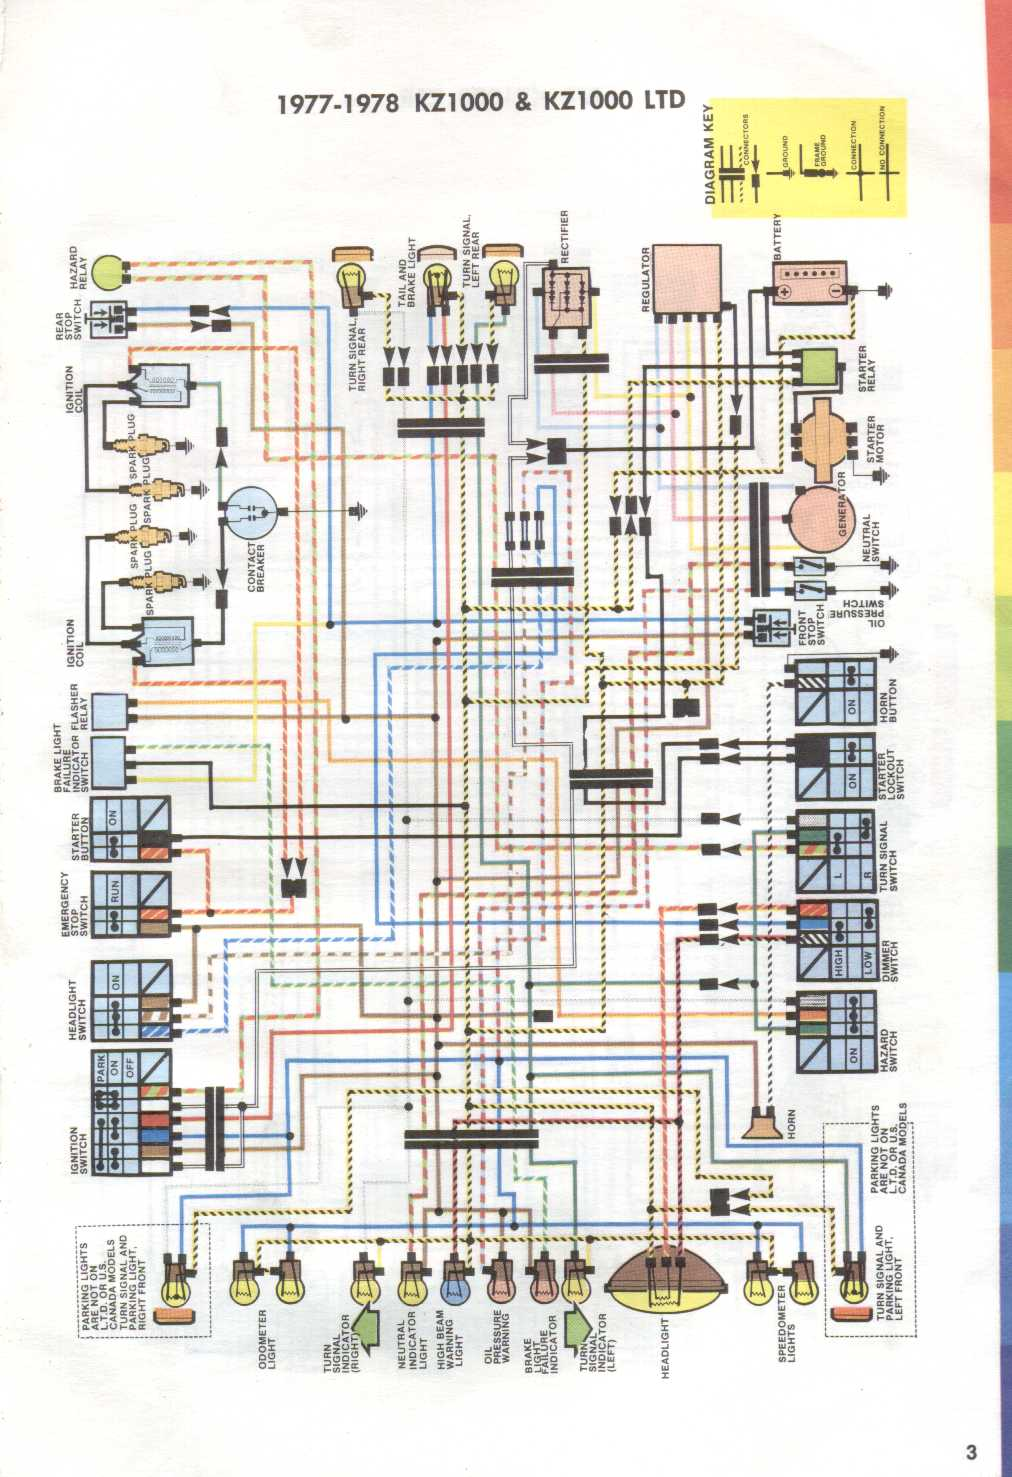 Kawasaki_KZ1000 LTD_Wiring_Diagram_1977 1978 wiring diagram for 1977 1978 kawasaki kz1000 and kz1000ltd  at gsmx.co